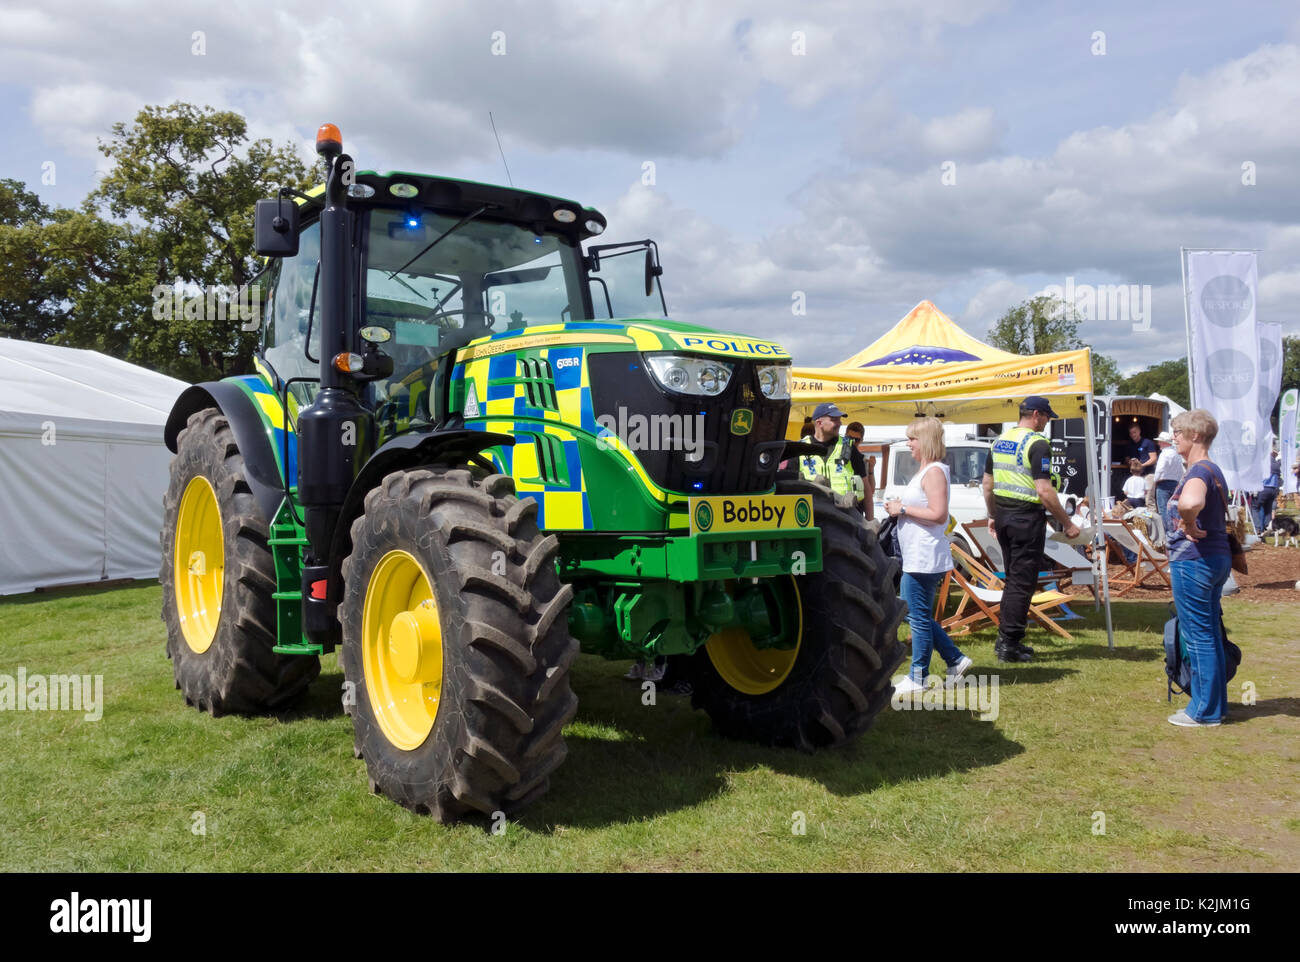 John Deere tractor promoting the North Yorkshire Police Rural Task Force at Ripley Show North Yorkshire England UK United Kingdom GB Great Britain - Stock Image